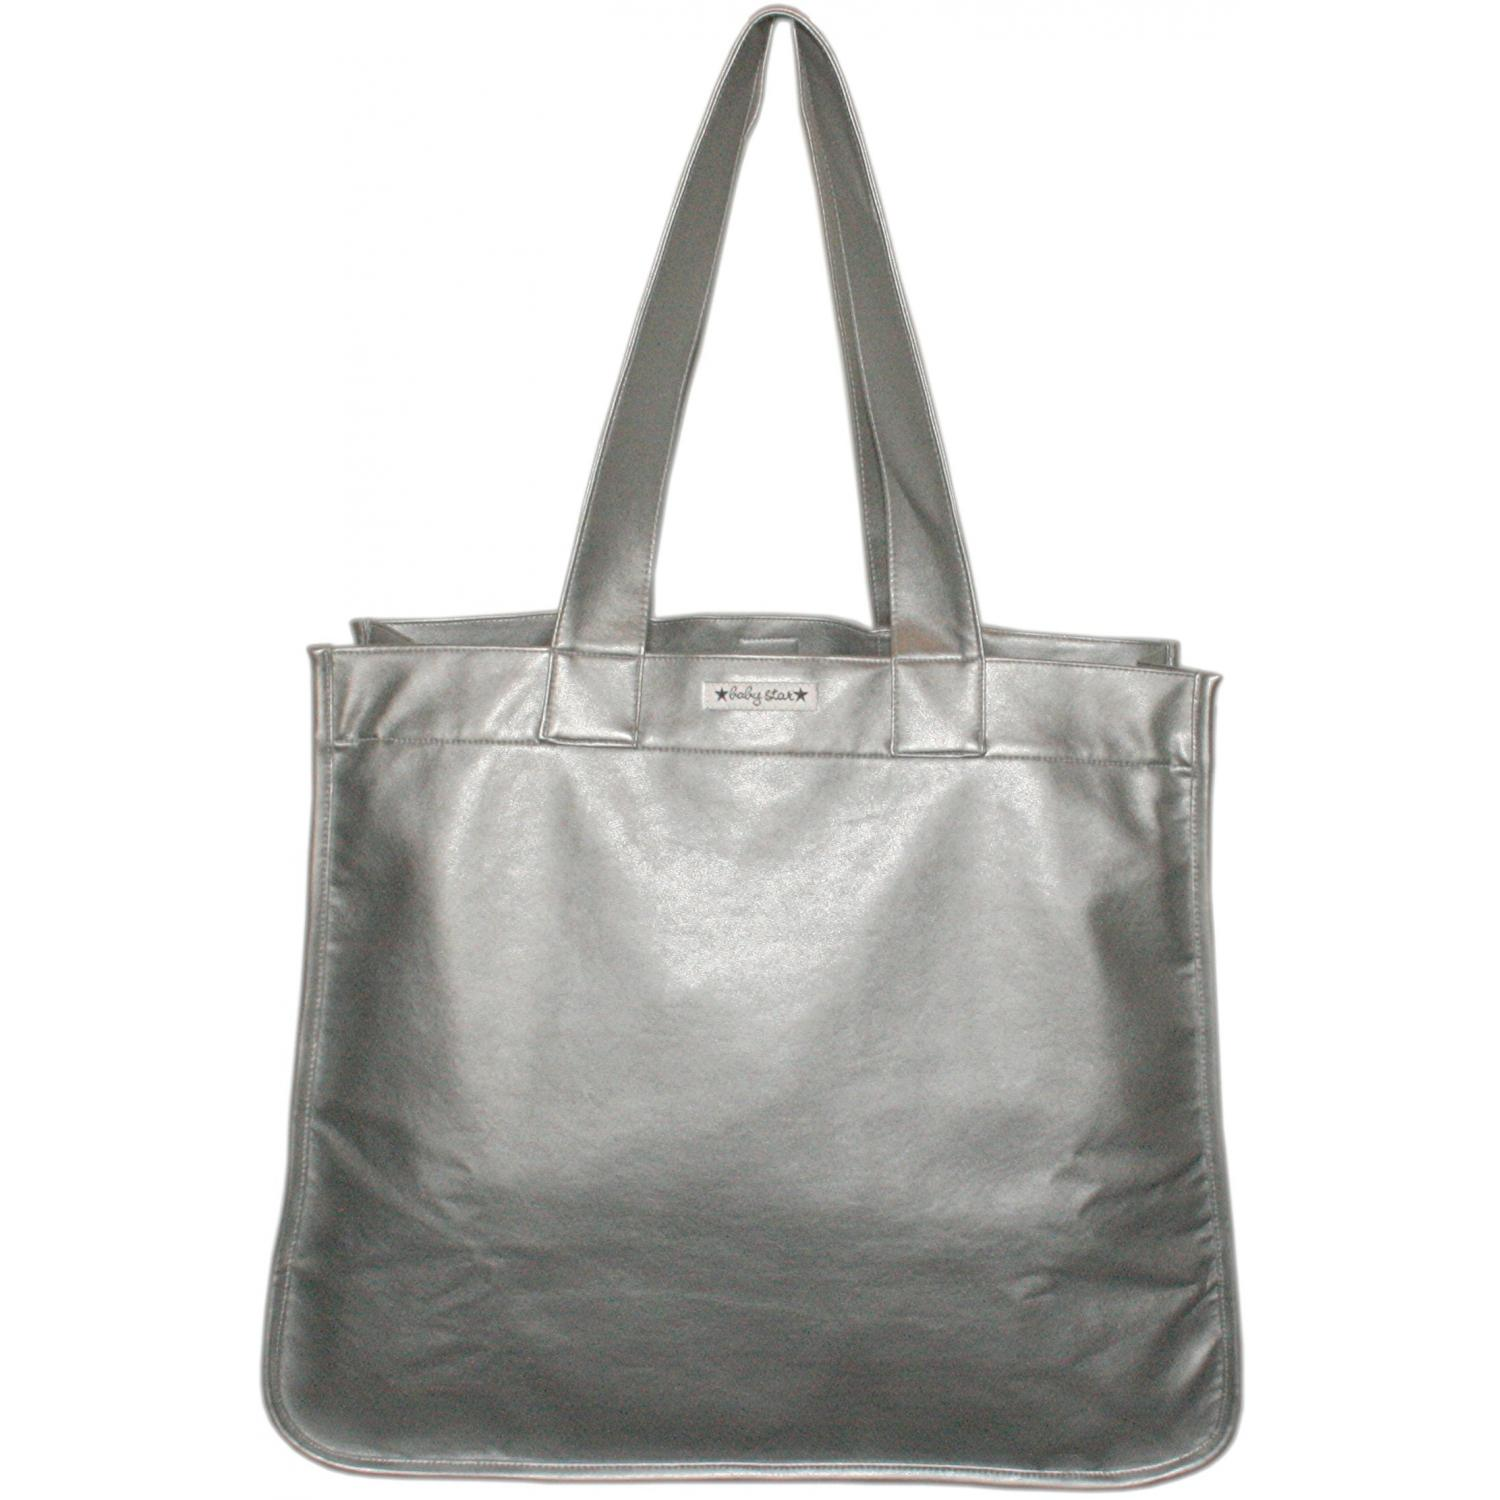 Baby Star Rock The Tote Metallic Diaper Bag - Silver